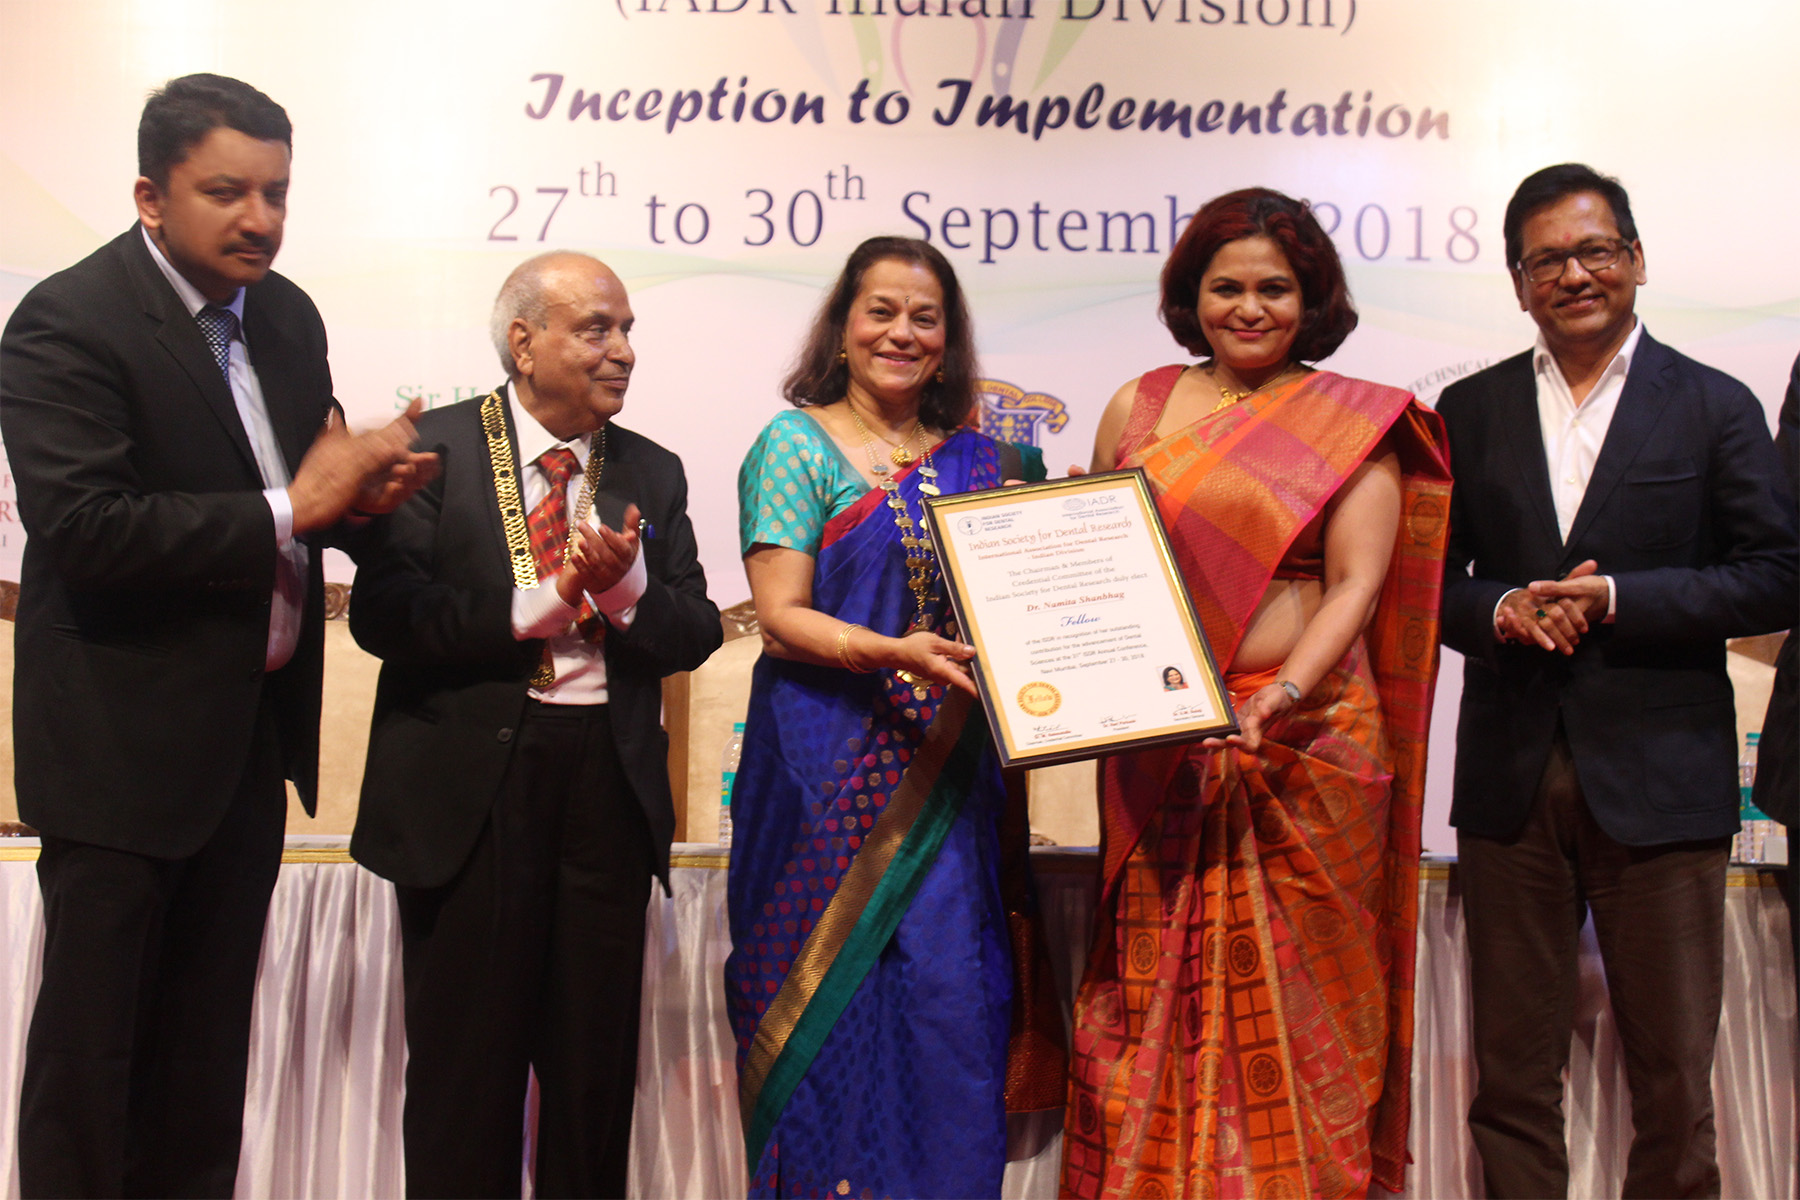 Prof Rene D'Souza handing over the ISDR Fellowship Award to Dr Namita Shanbhag. Also seen are Dr Vijay Patil, Dr SM Balaji and Dr Hari Parkash